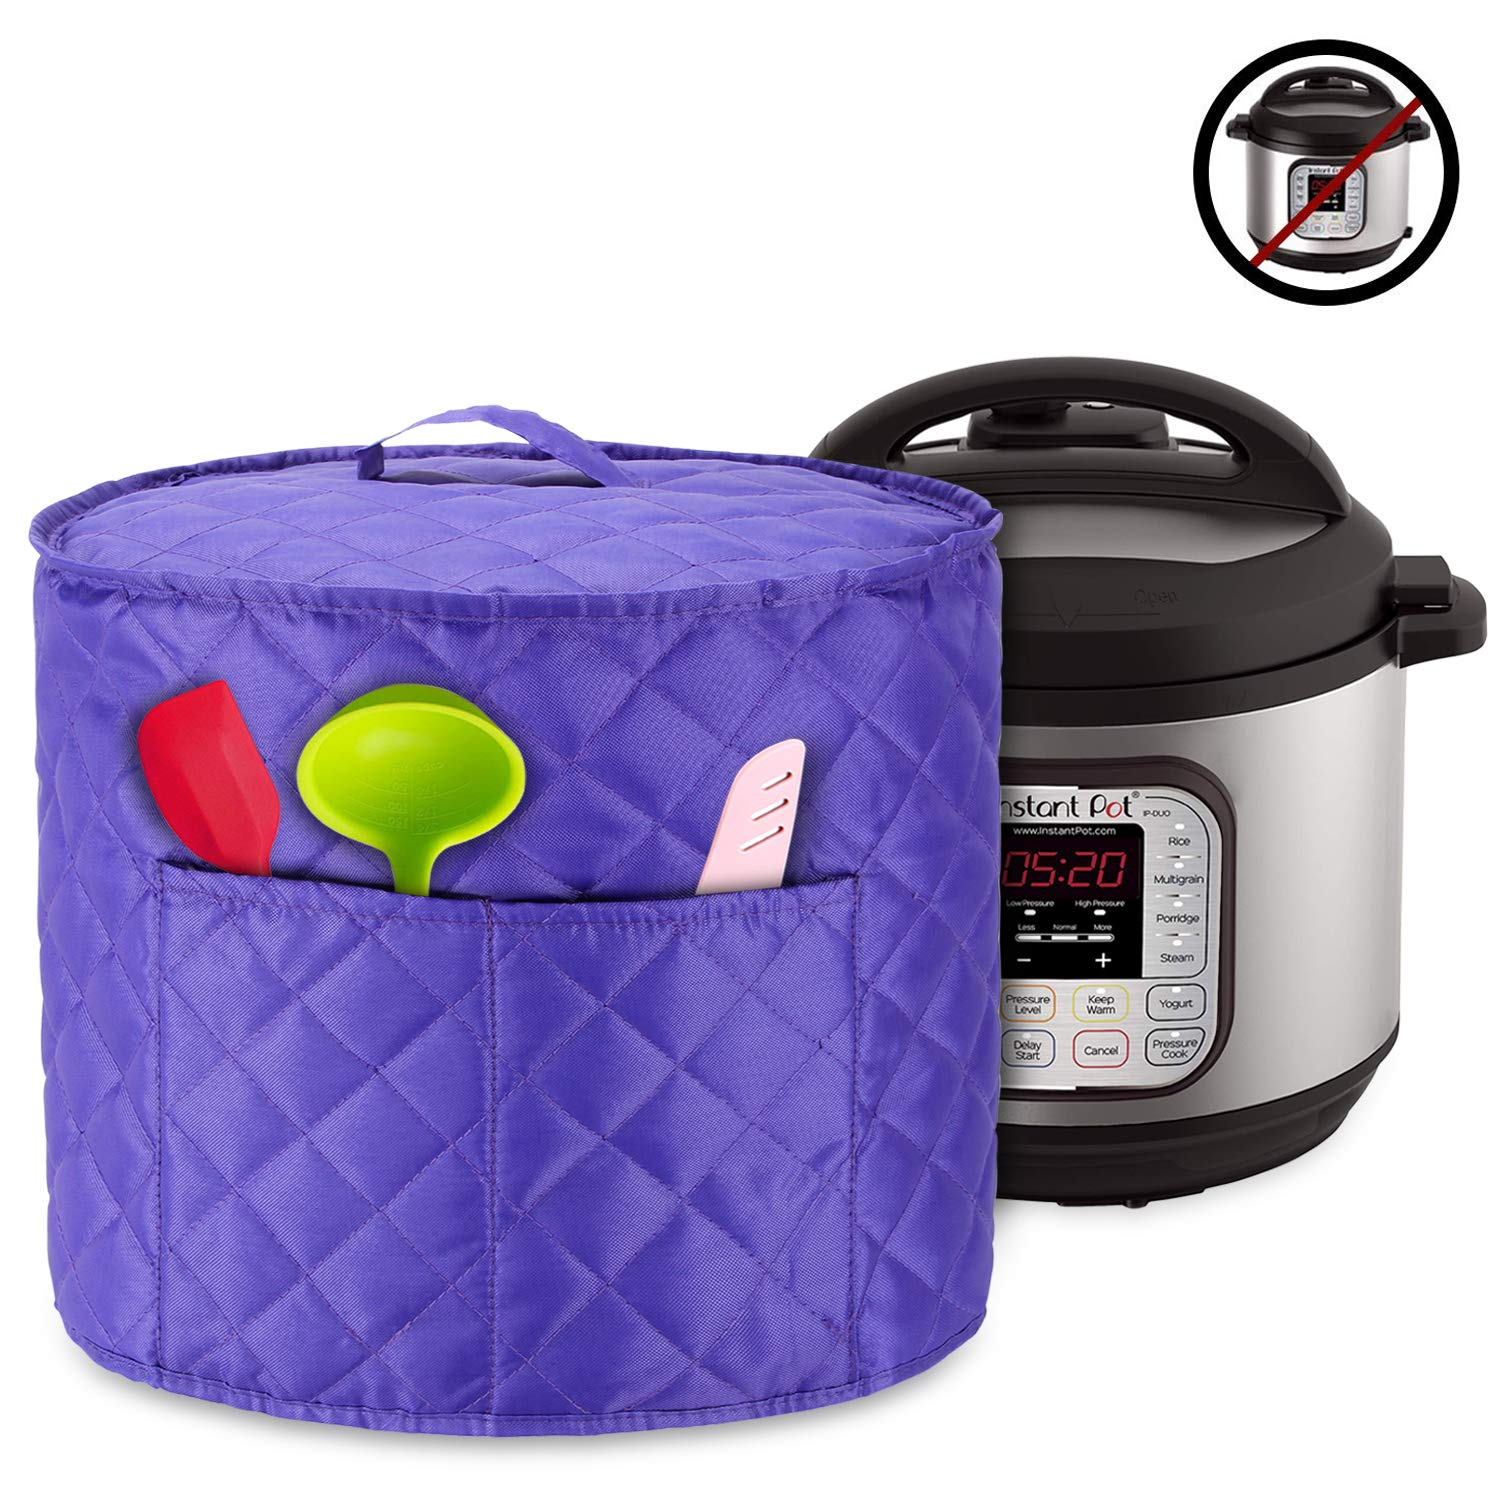 Luxja Dust Cover for 8 Quart Instant Pot, Cloth Cover with Pockets for Instant Pot (8 Quart) and Extra Accessories, Purple Quilted Fabric (Large)